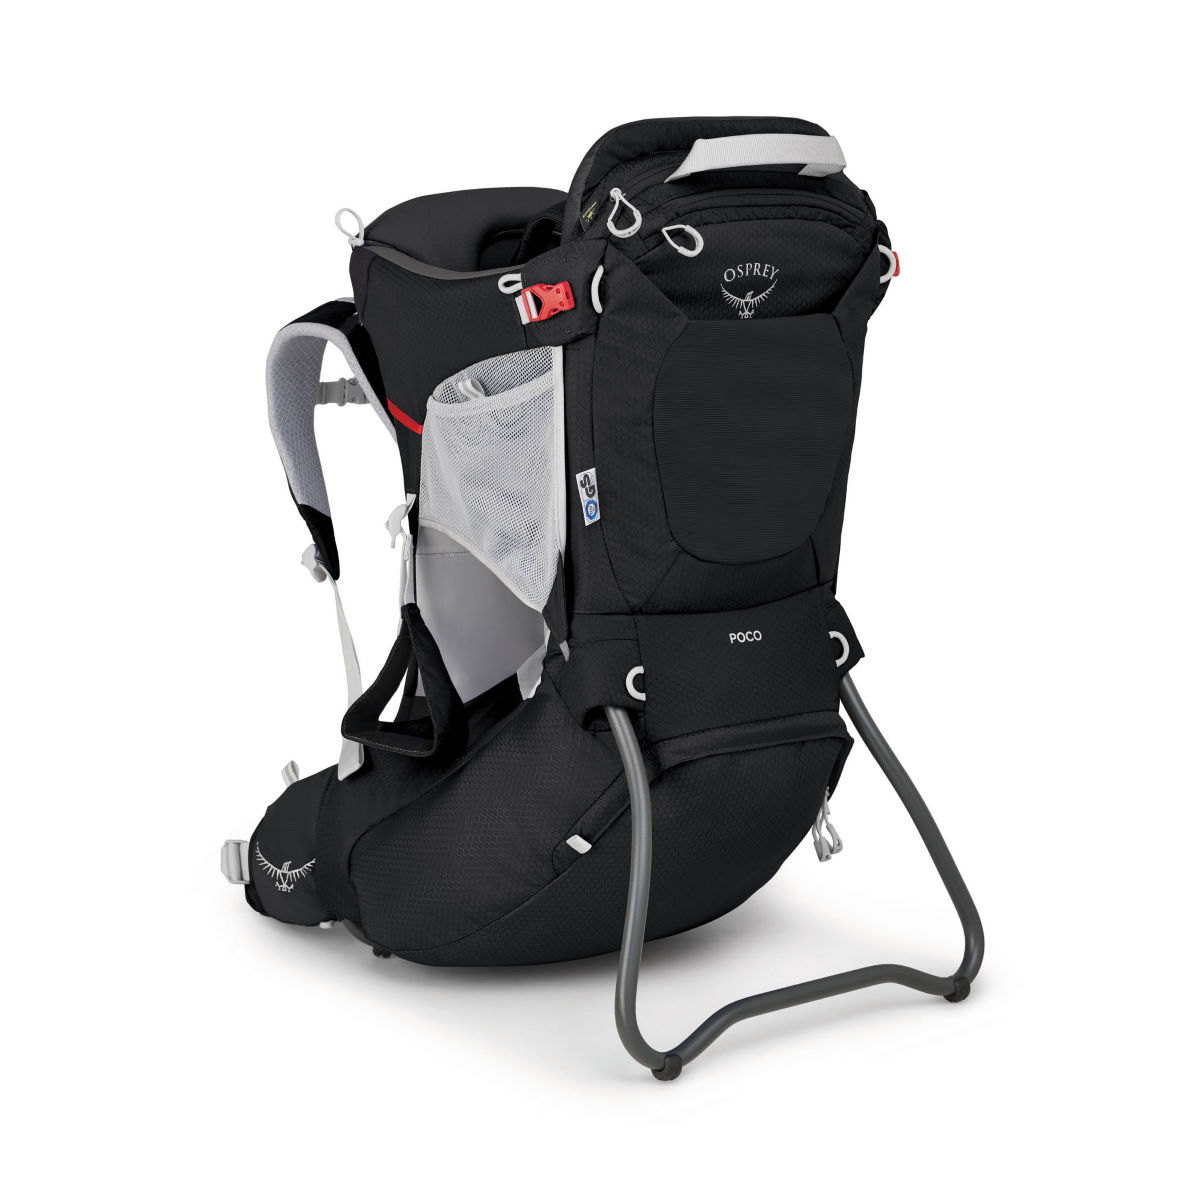 Osprey Poco Child Carrier – One Size Starry Black | Child Carriers